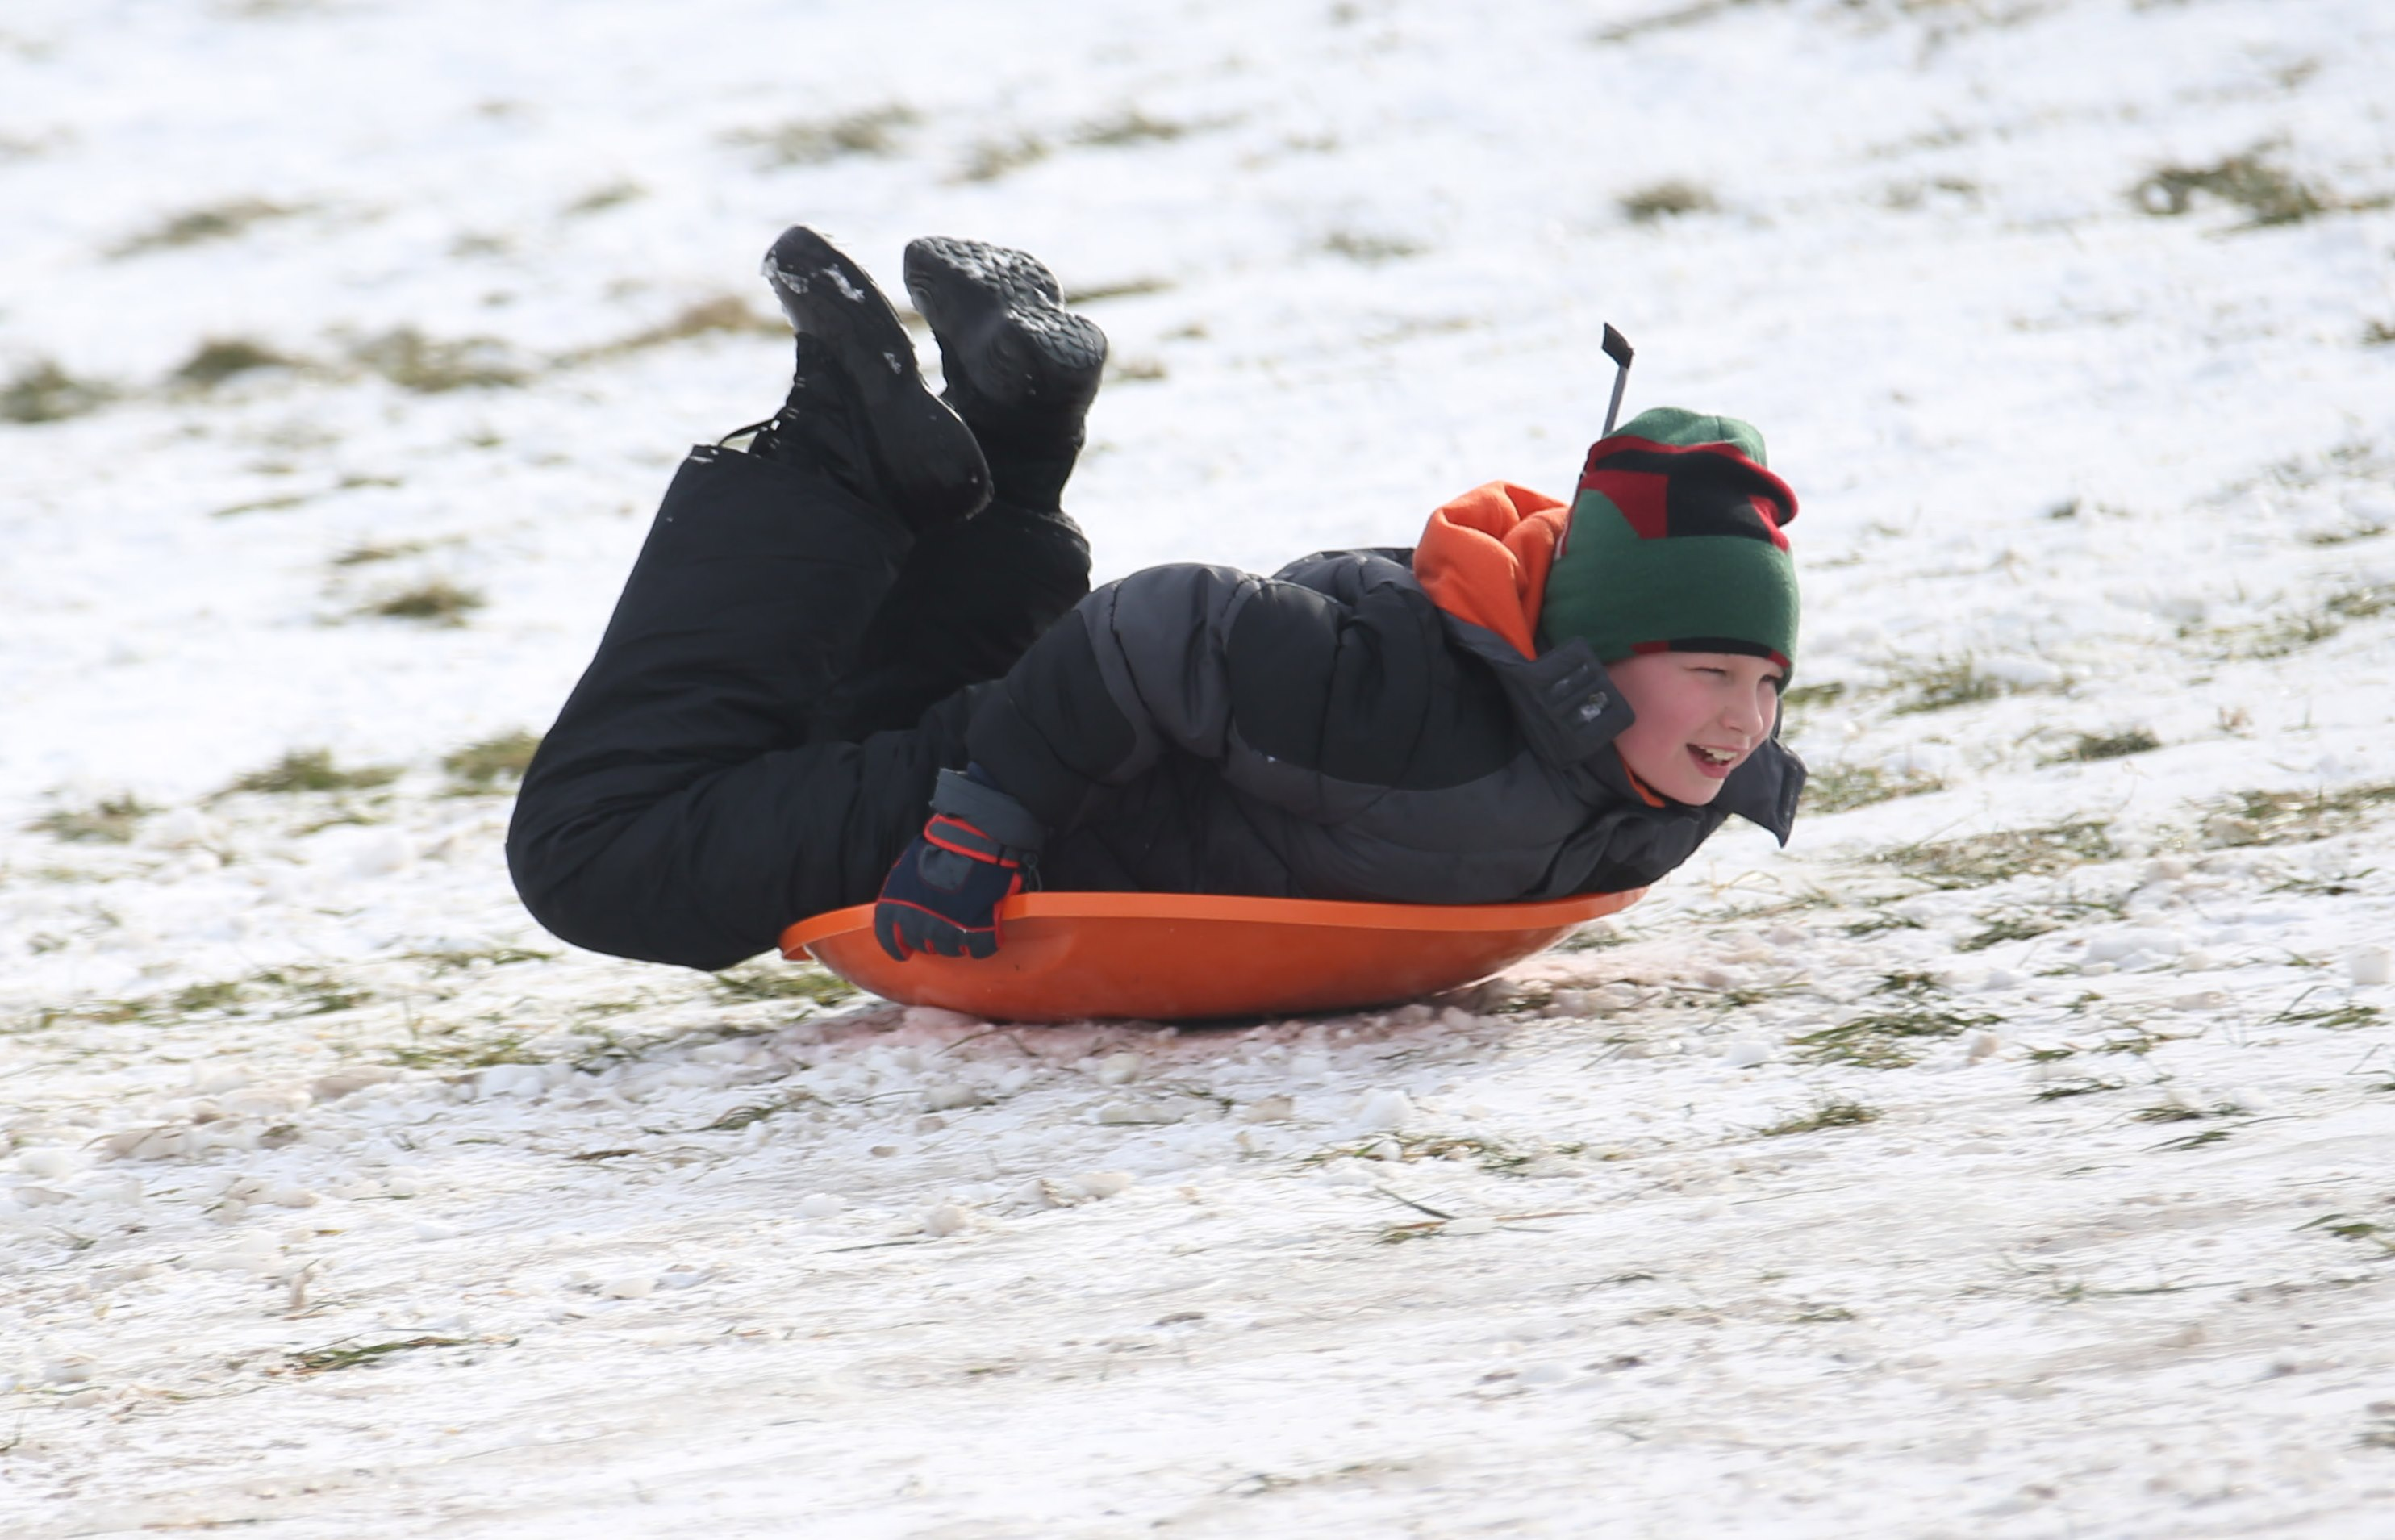 Connor Mattheus, 8, of Amherst, goes down the Saratoga Hill in Amherst in his saucer. (Sharon Cantillon/Buffalo News)